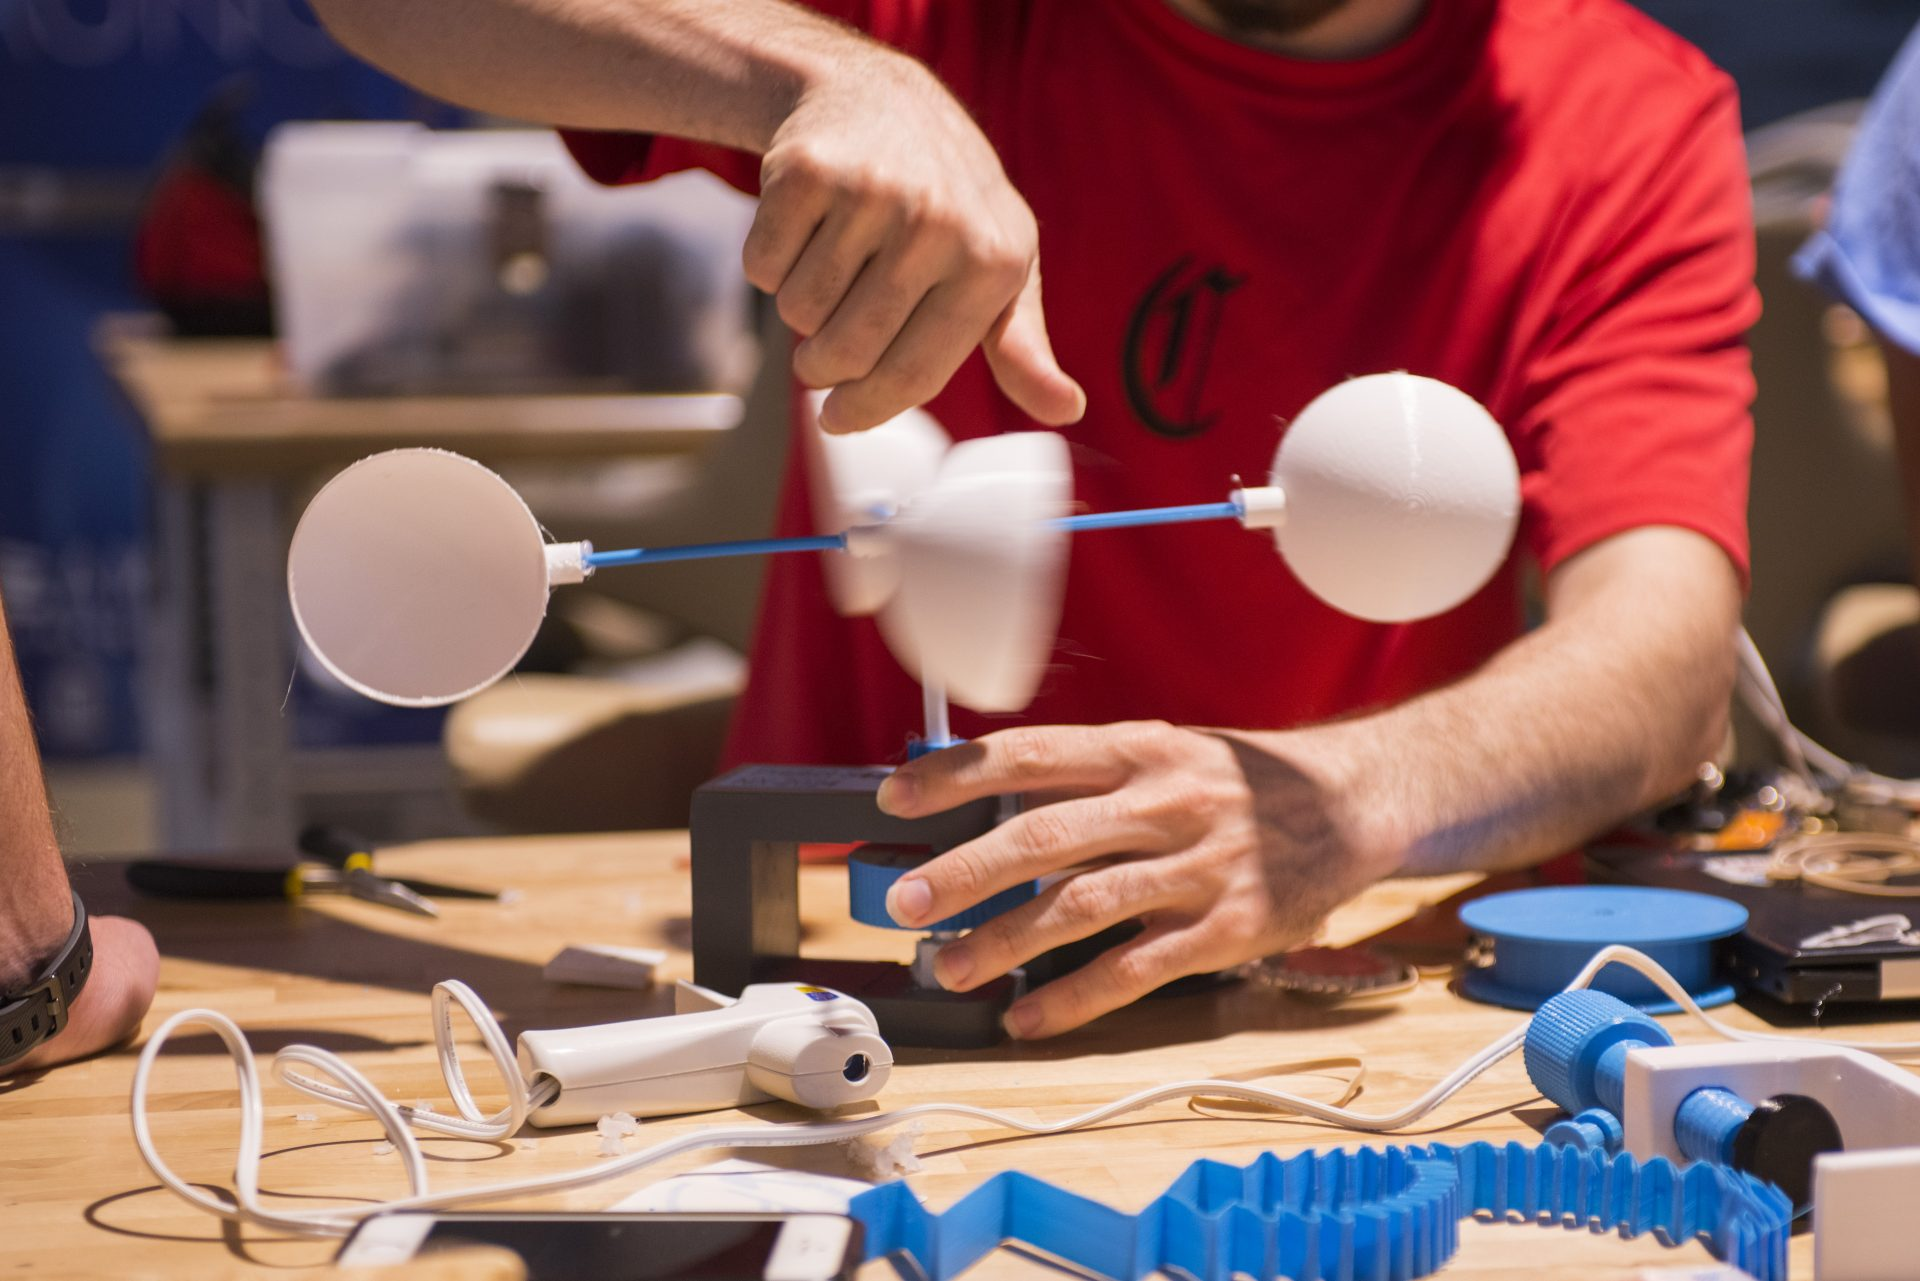 Students create prototypes to pitch during the Makeathon